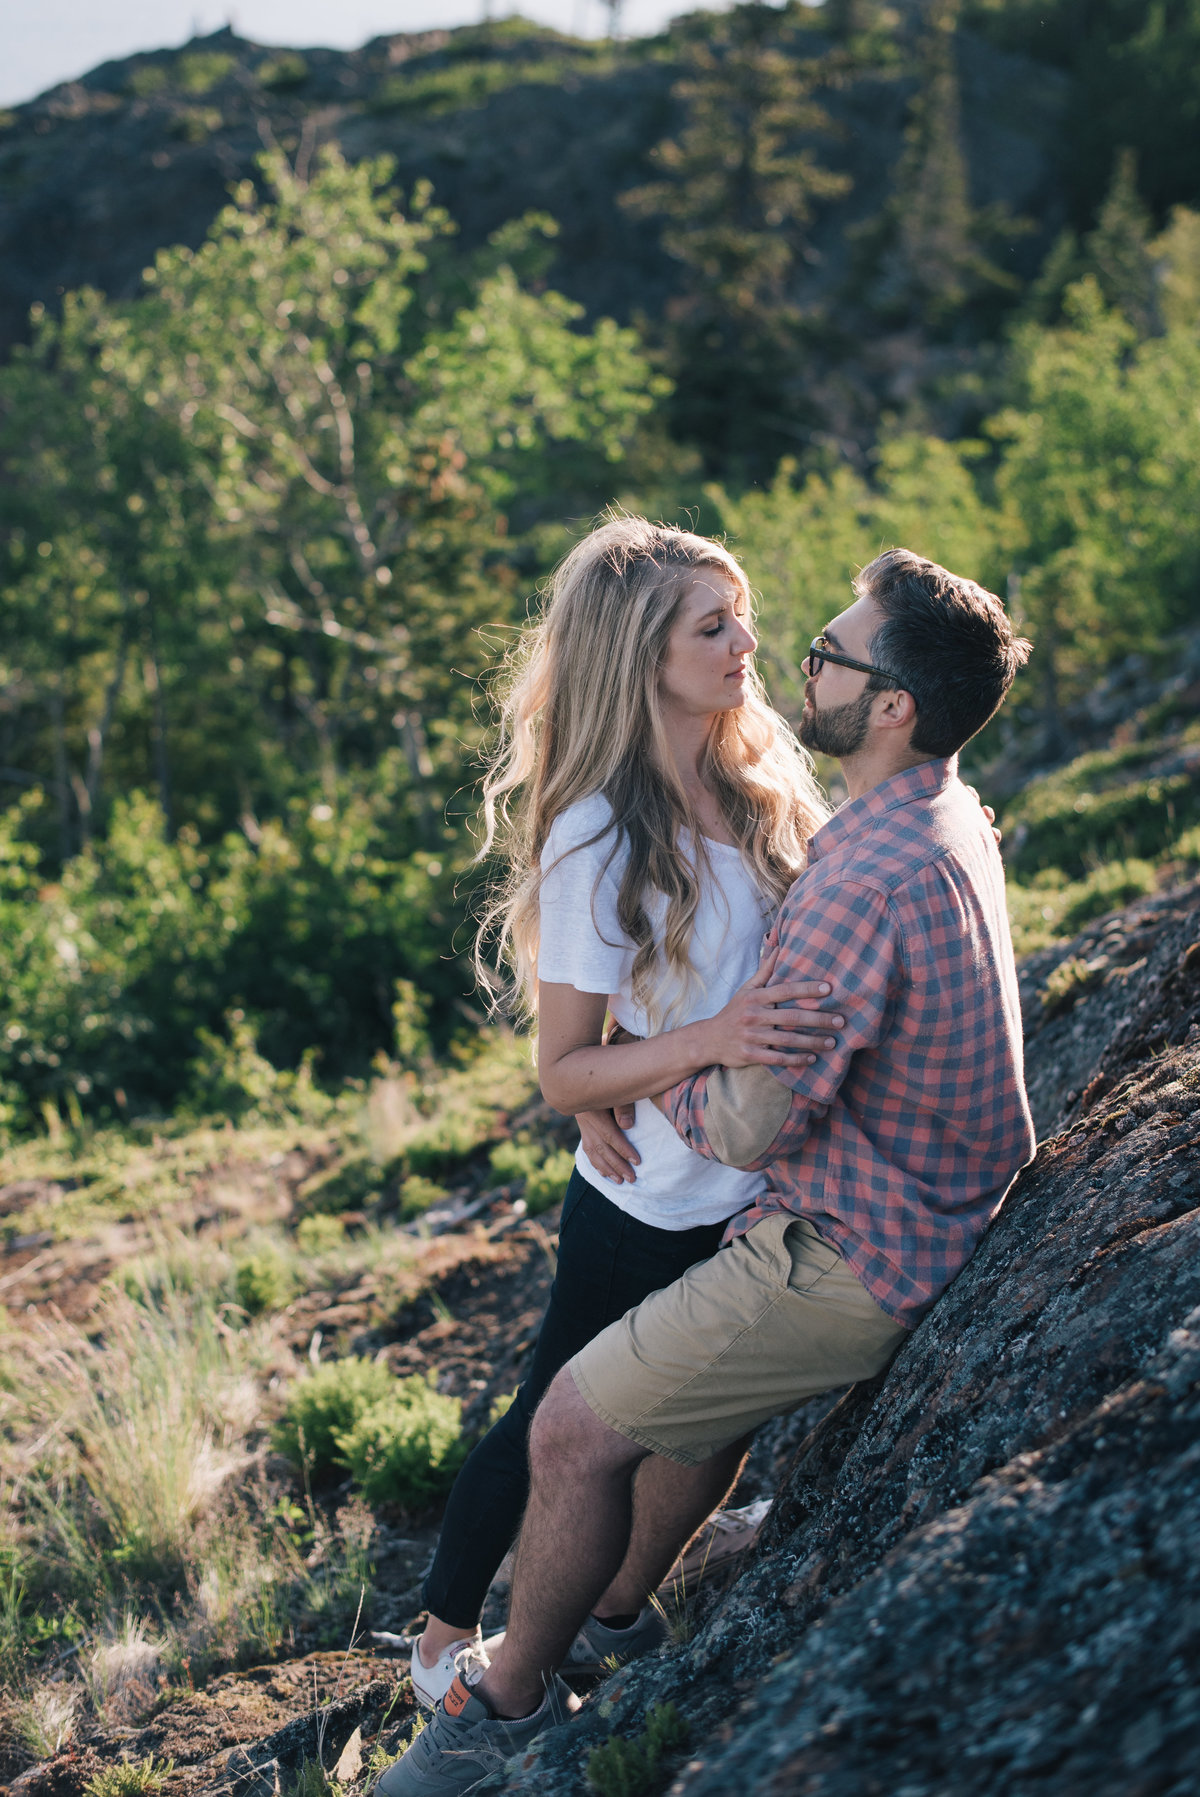 004_Erica Rose Photography_Anchorage Engagement Photographer_Featured